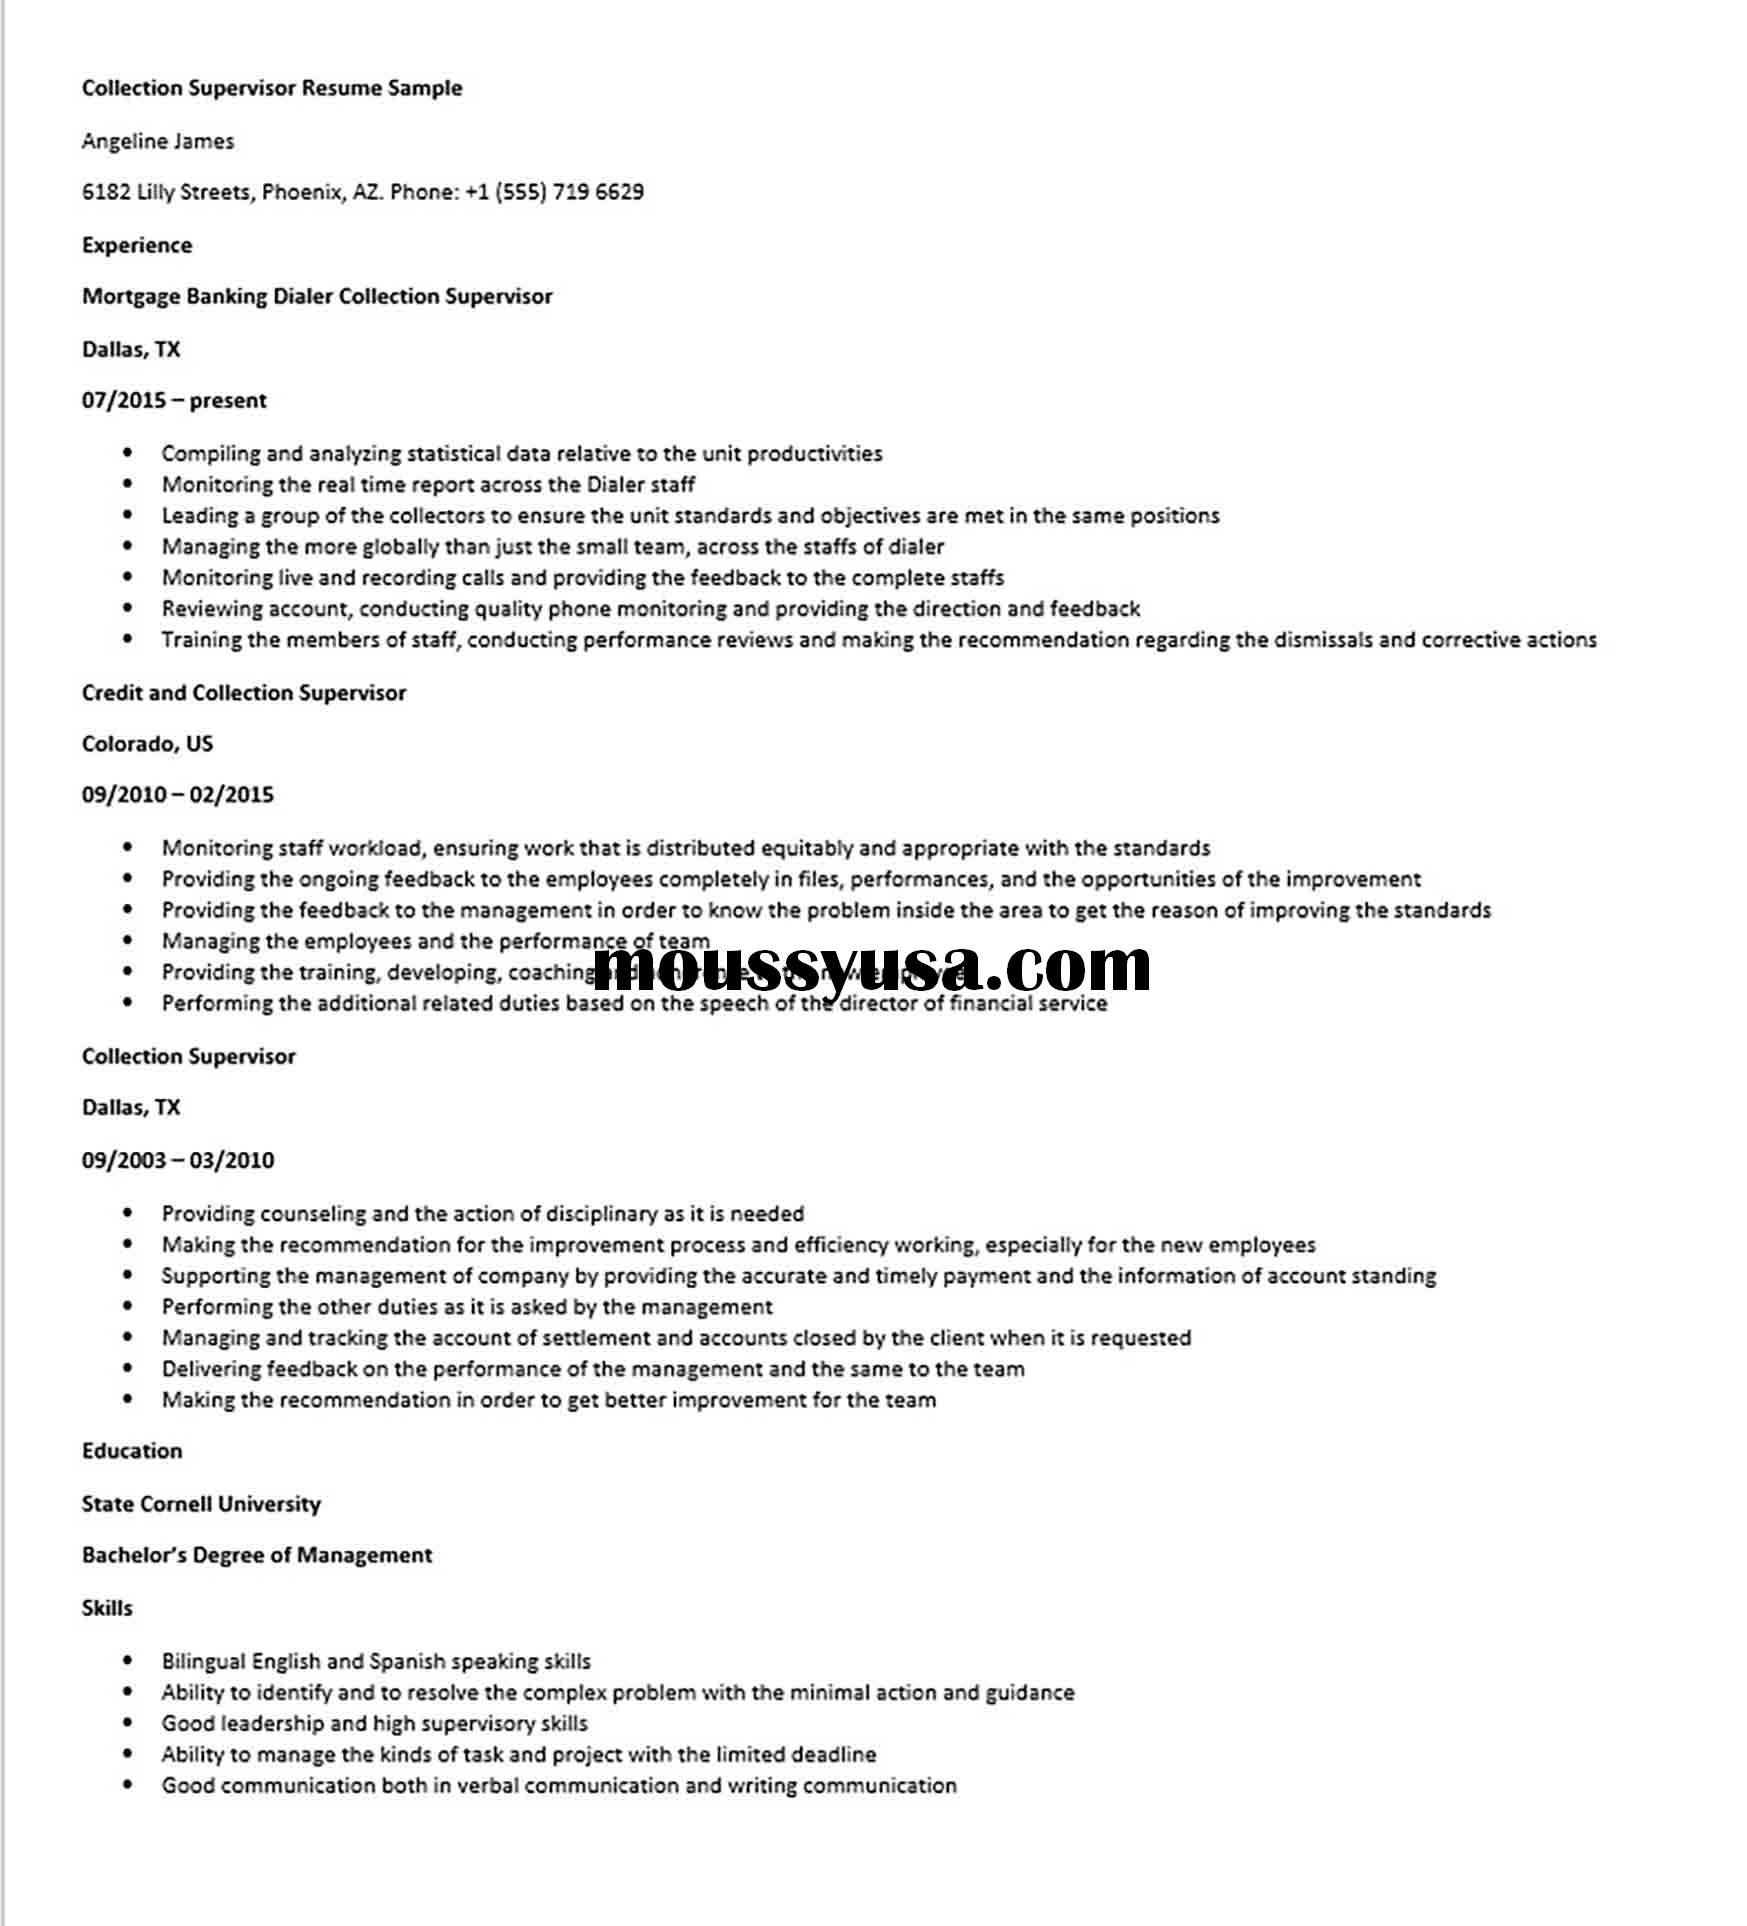 Collection Supervisor Resume Sample 1